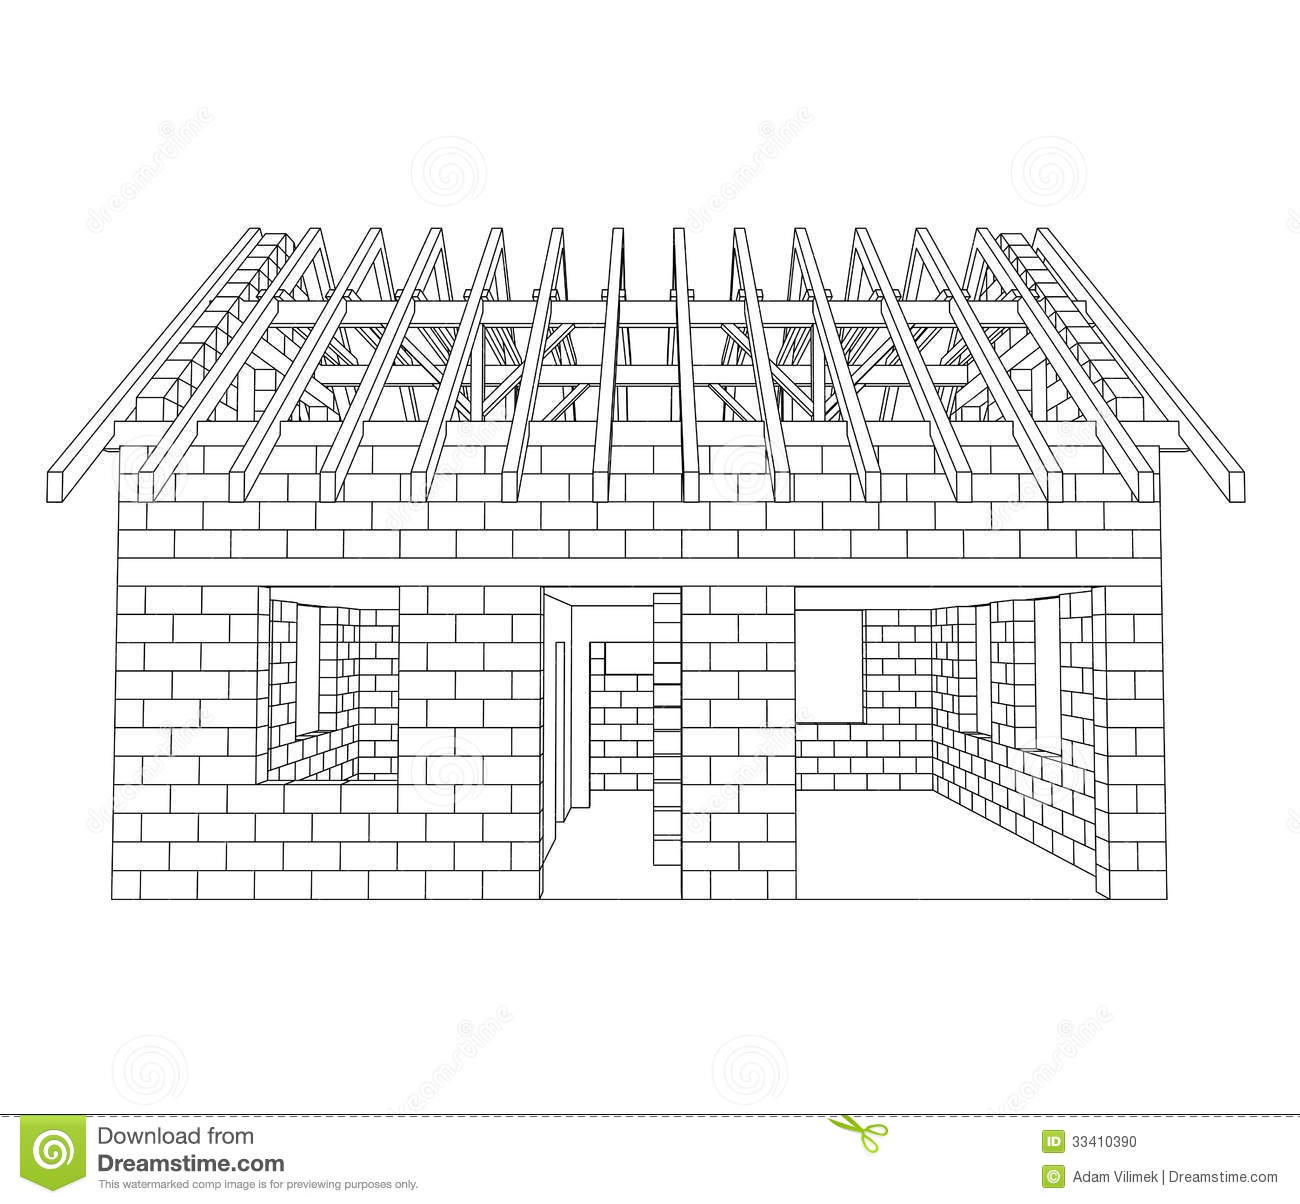 11029 besides Royalty Free Stock Photography Silhouette People Set Image9435957 as well Live Work in addition Life Goals furthermore House plans french cottage. on family house plans